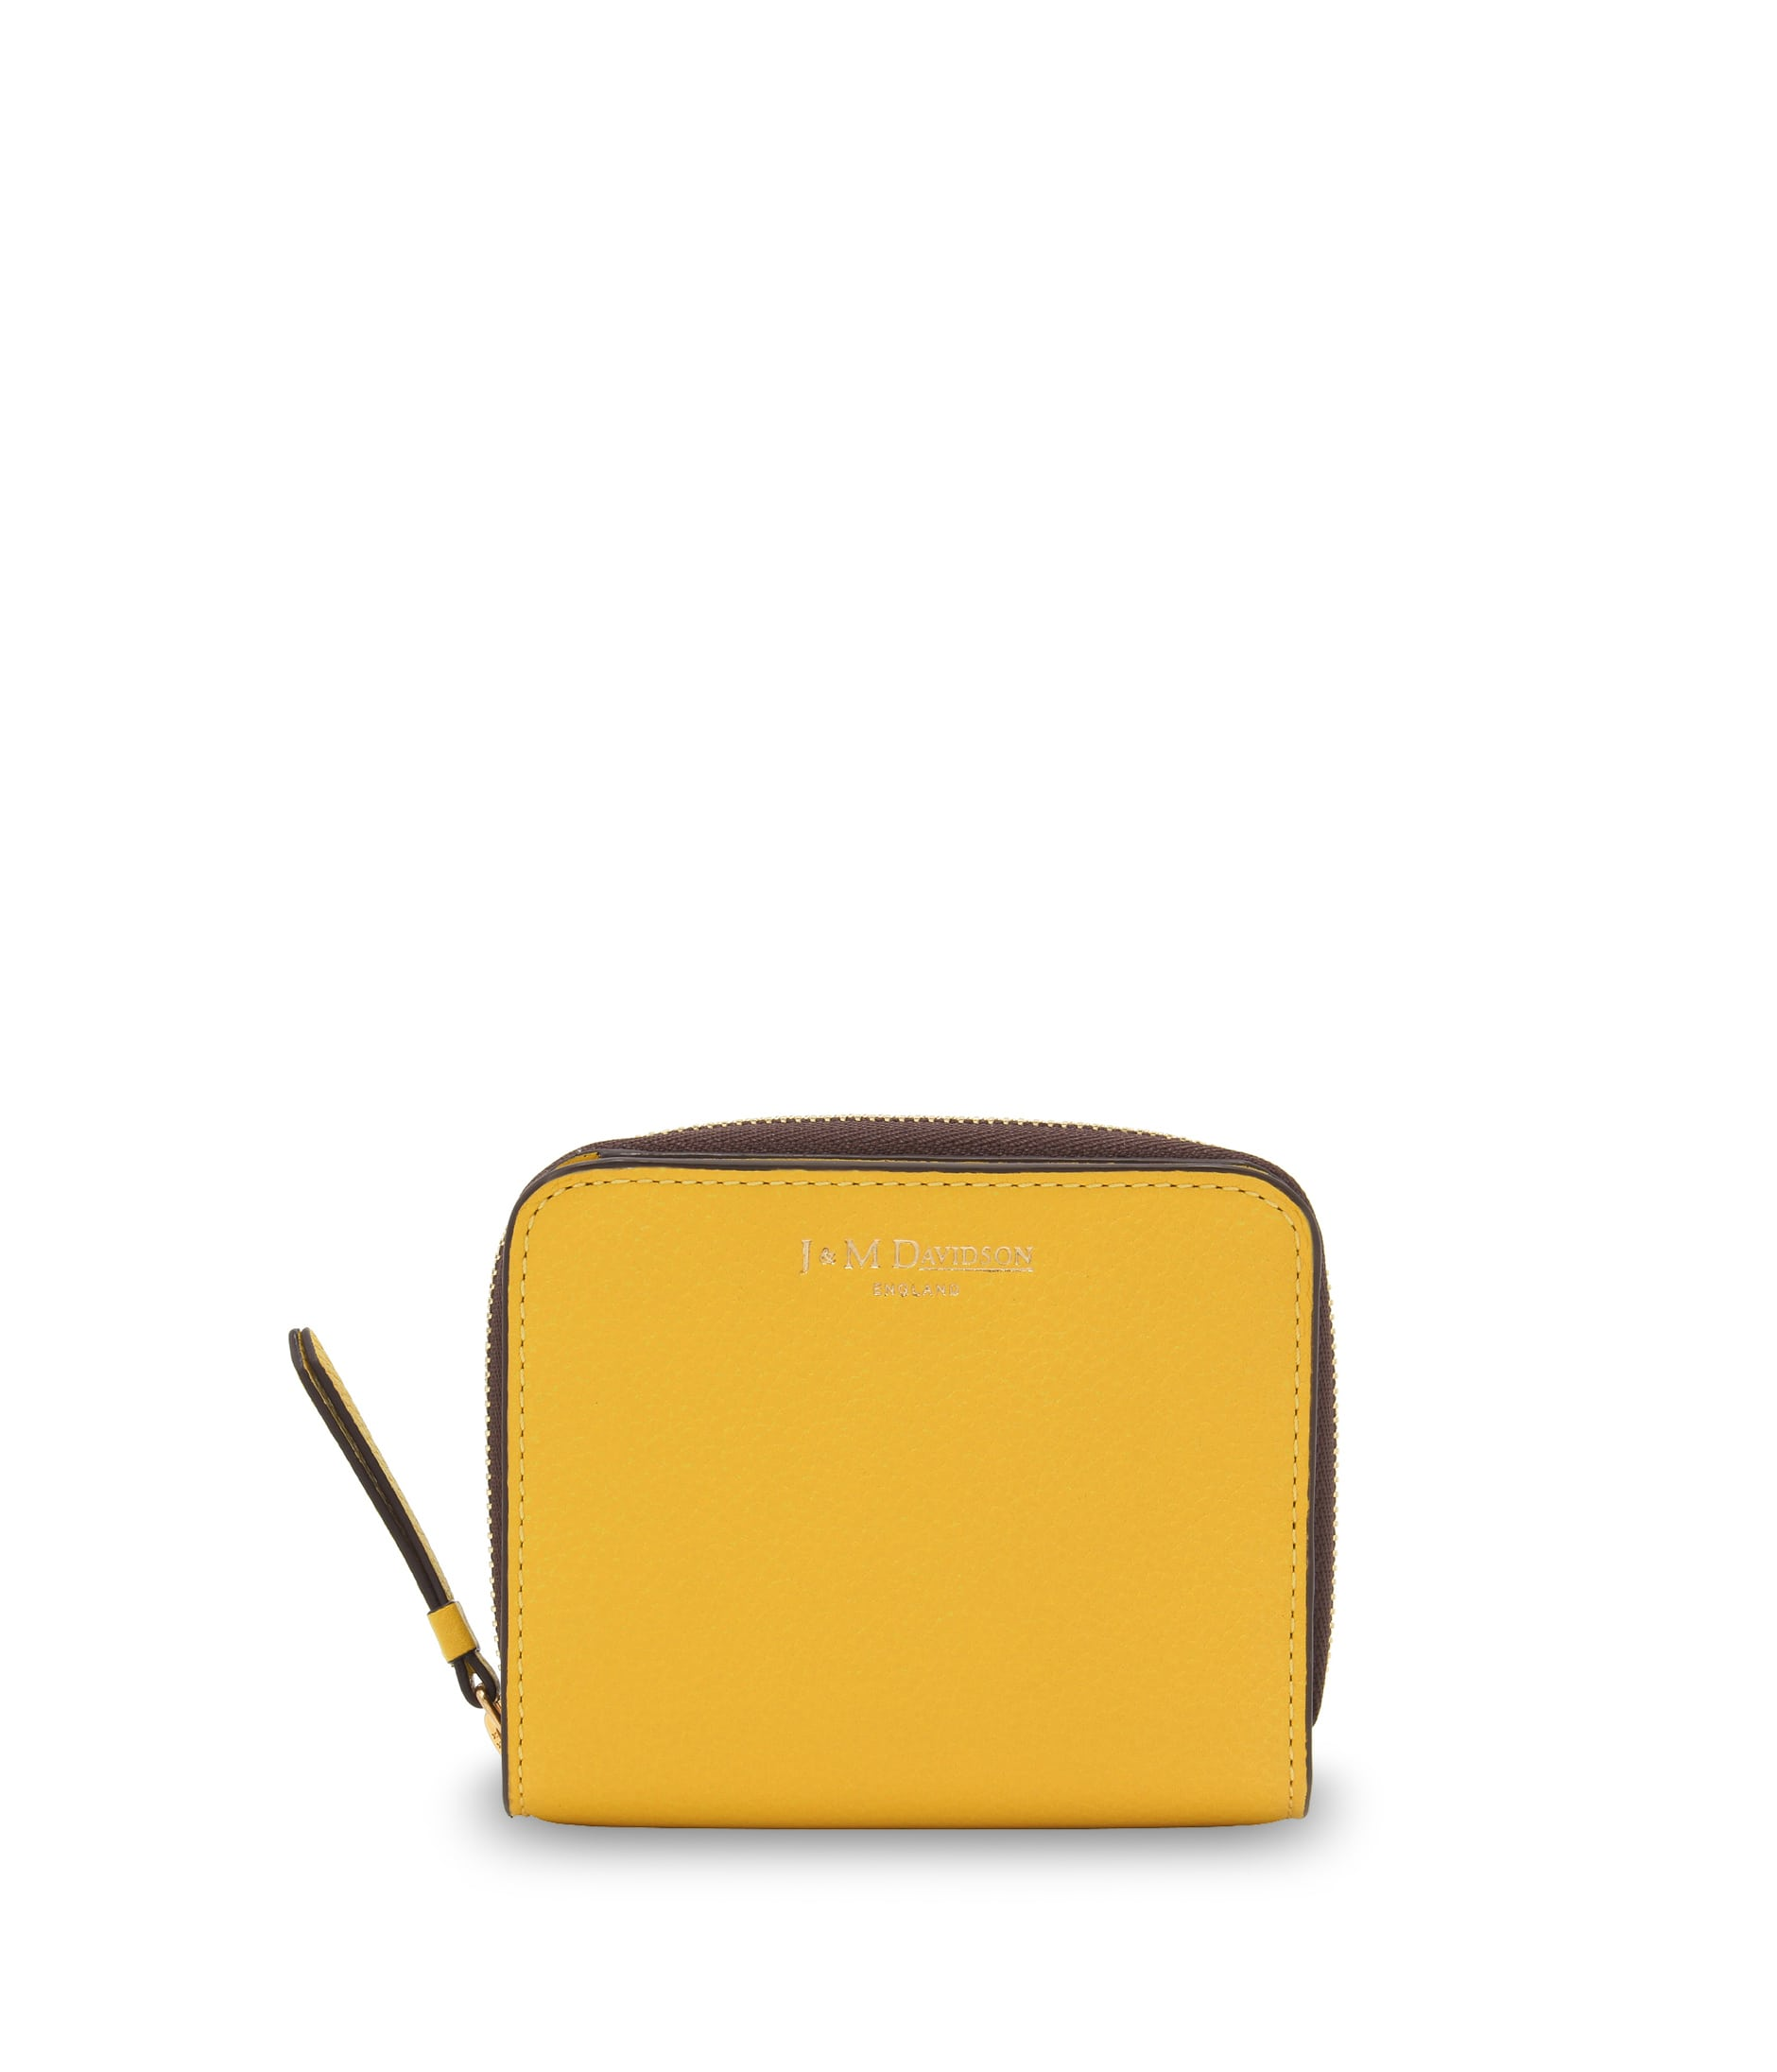 COIN/CARD WALLET 詳細画像 ACACIA YELLOW 1